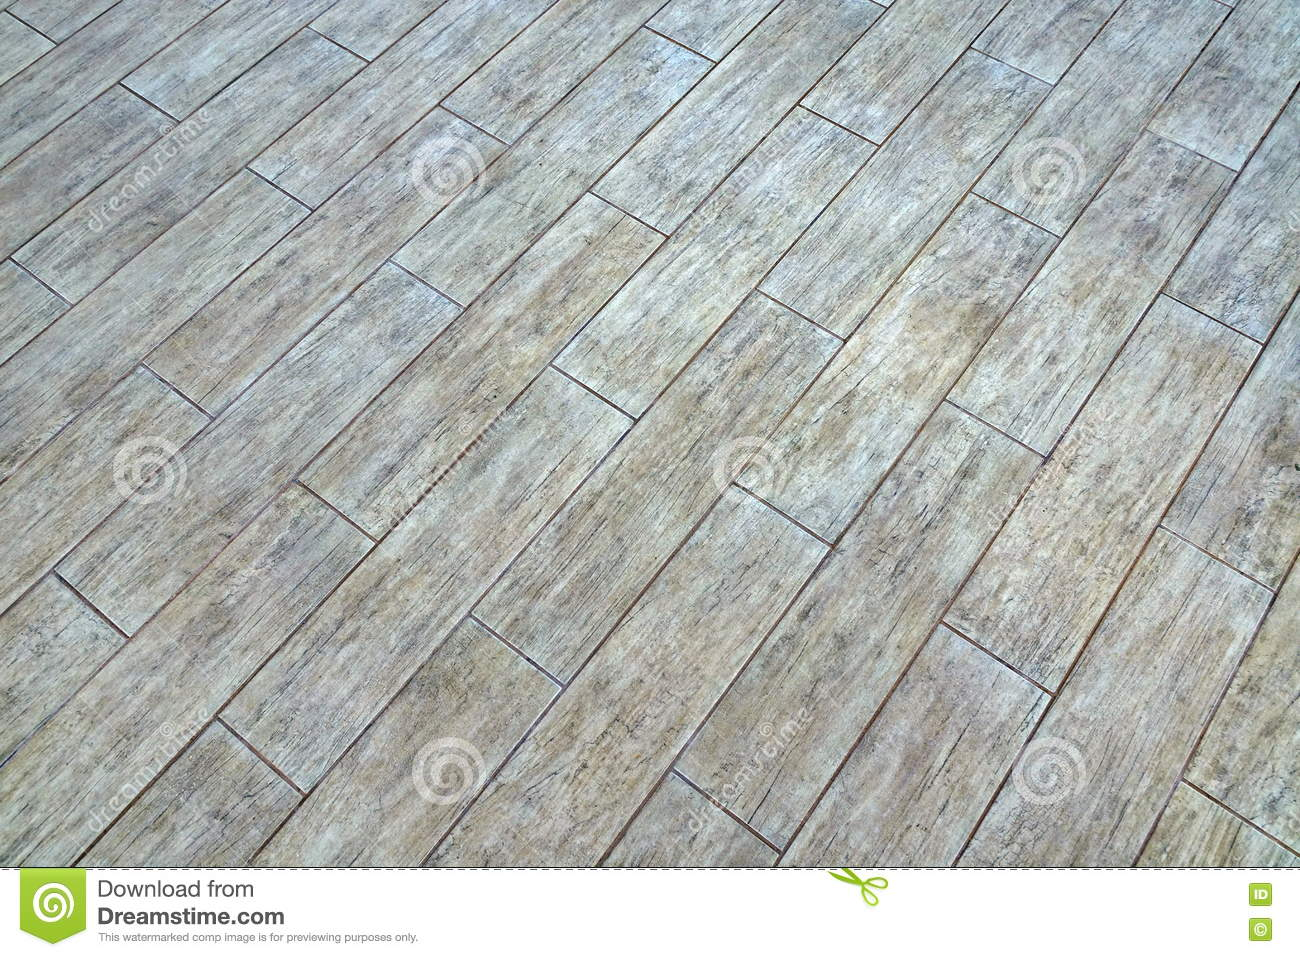 Wood textured tile elegant natural countryside glue down solid ceramic parquet floor tiles with natural ash wood textured patte stock photo with wood textured tile dailygadgetfo Gallery